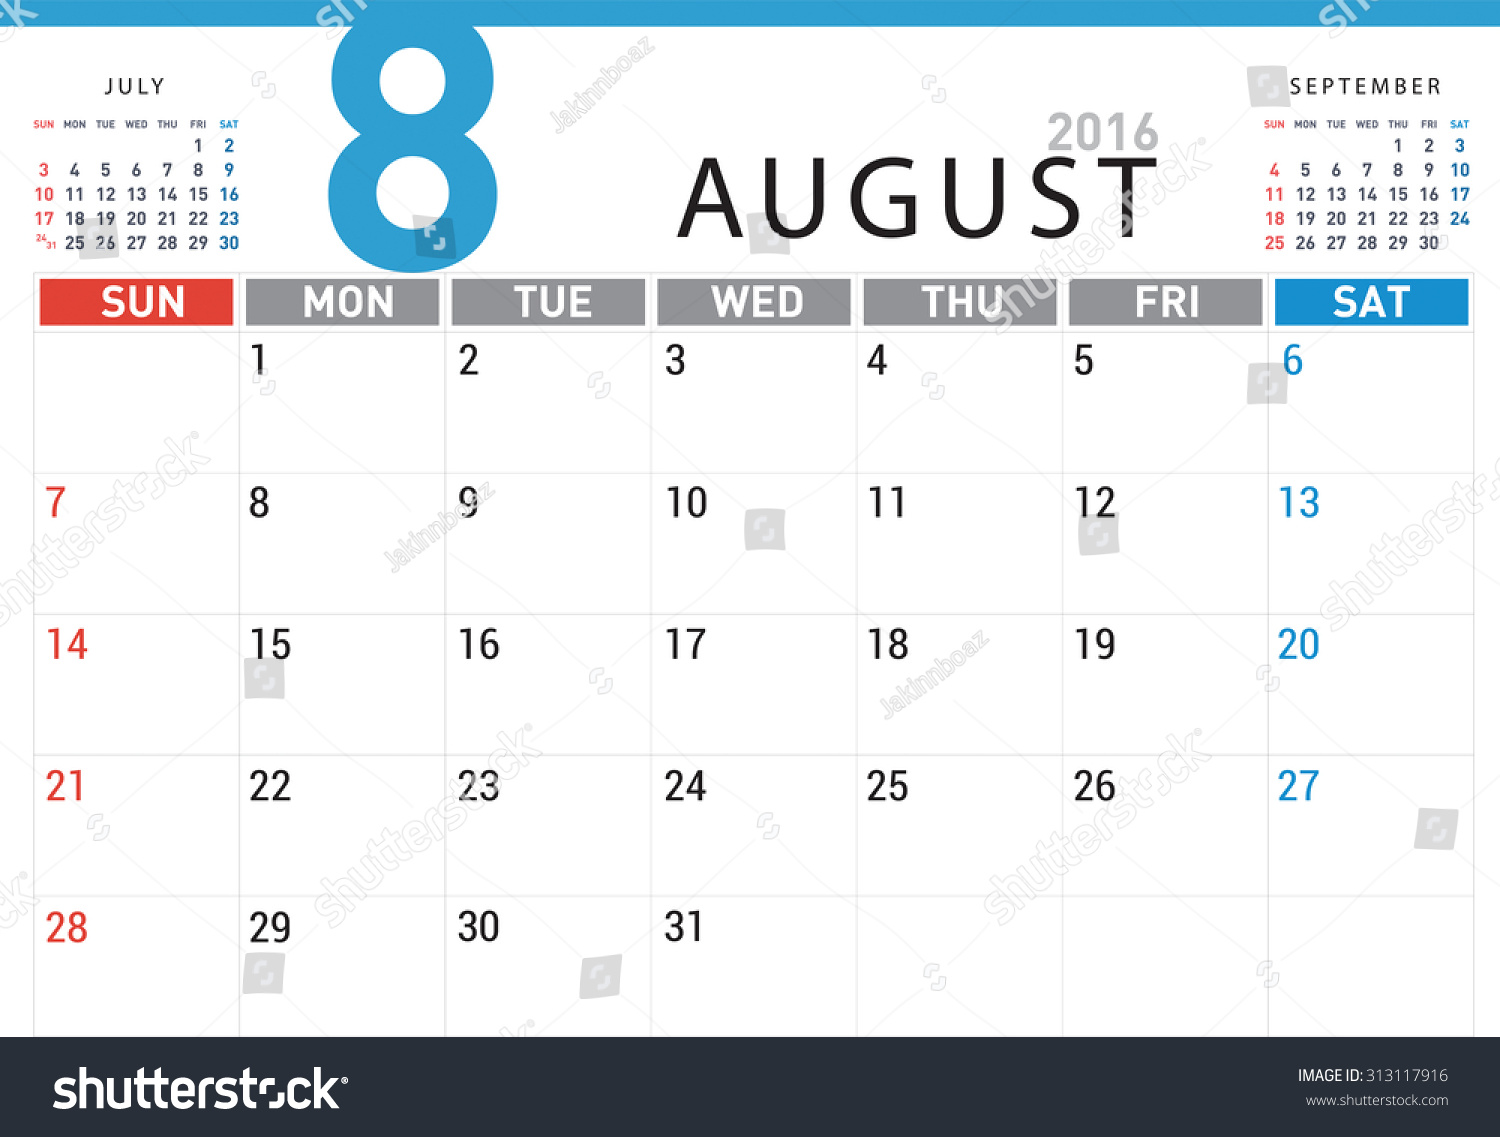 Planning Calendar Simple Template August 2016 Stock Vector ...